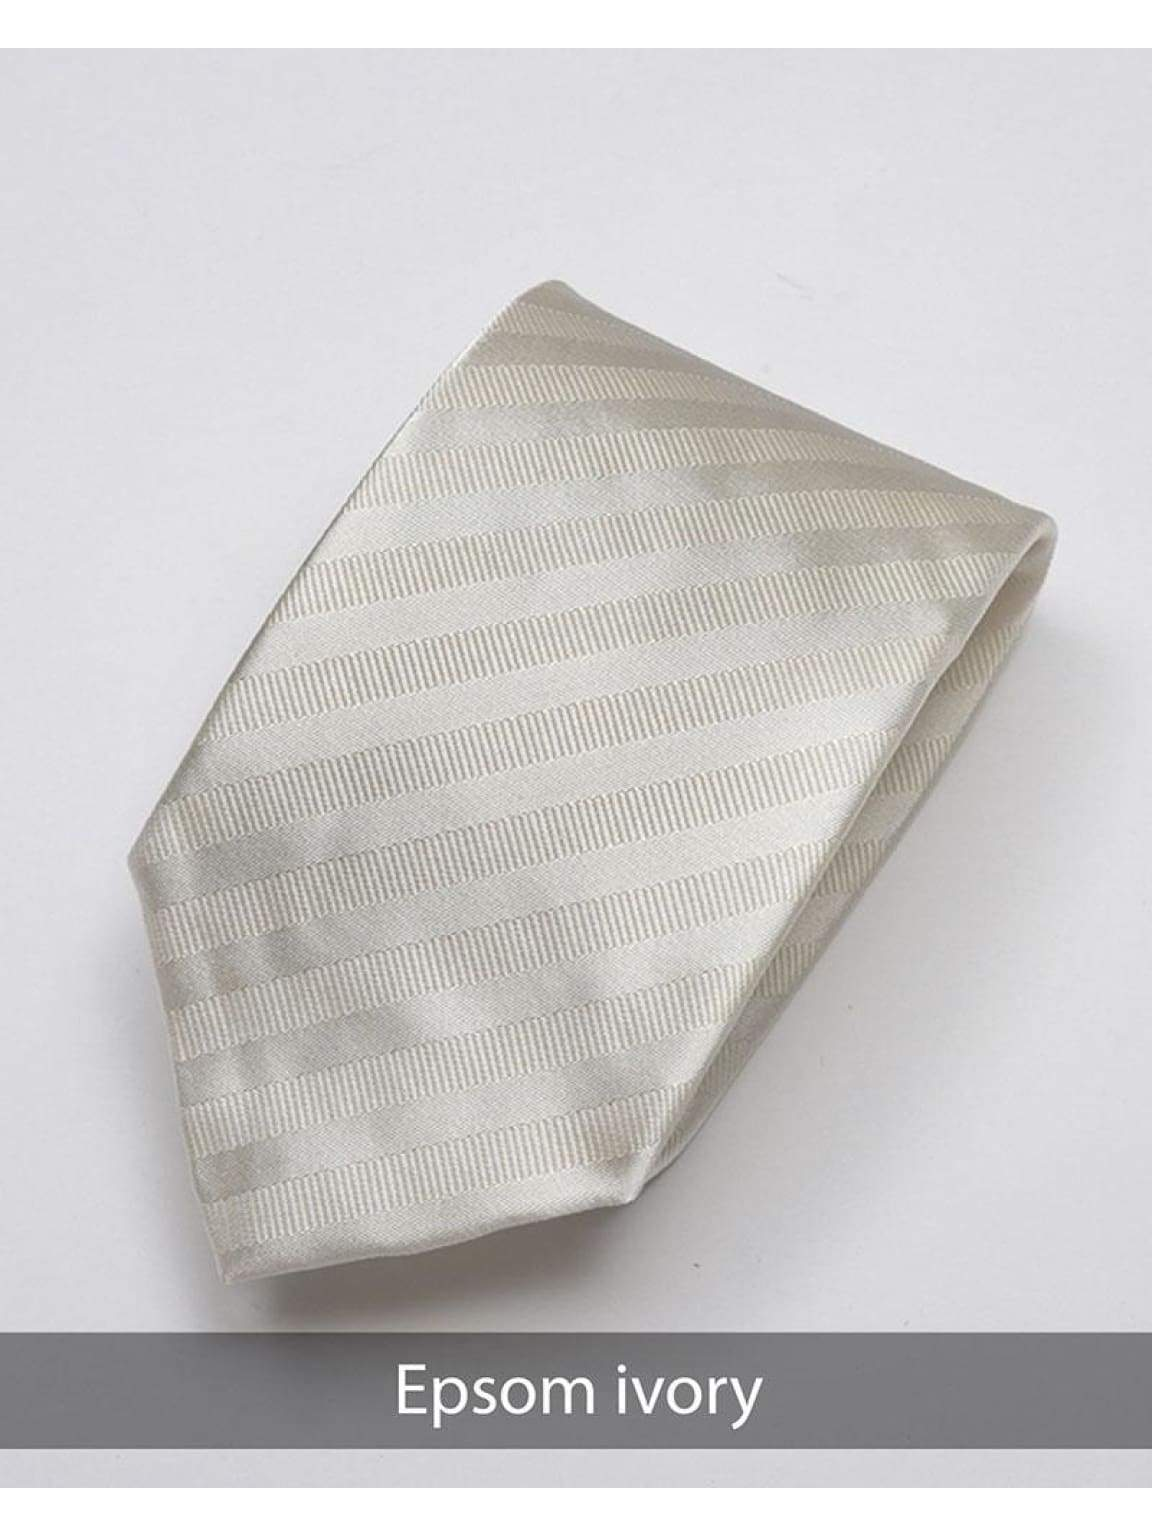 Heirloom Epsom Mens Ivory Stripped Tie - Accessories